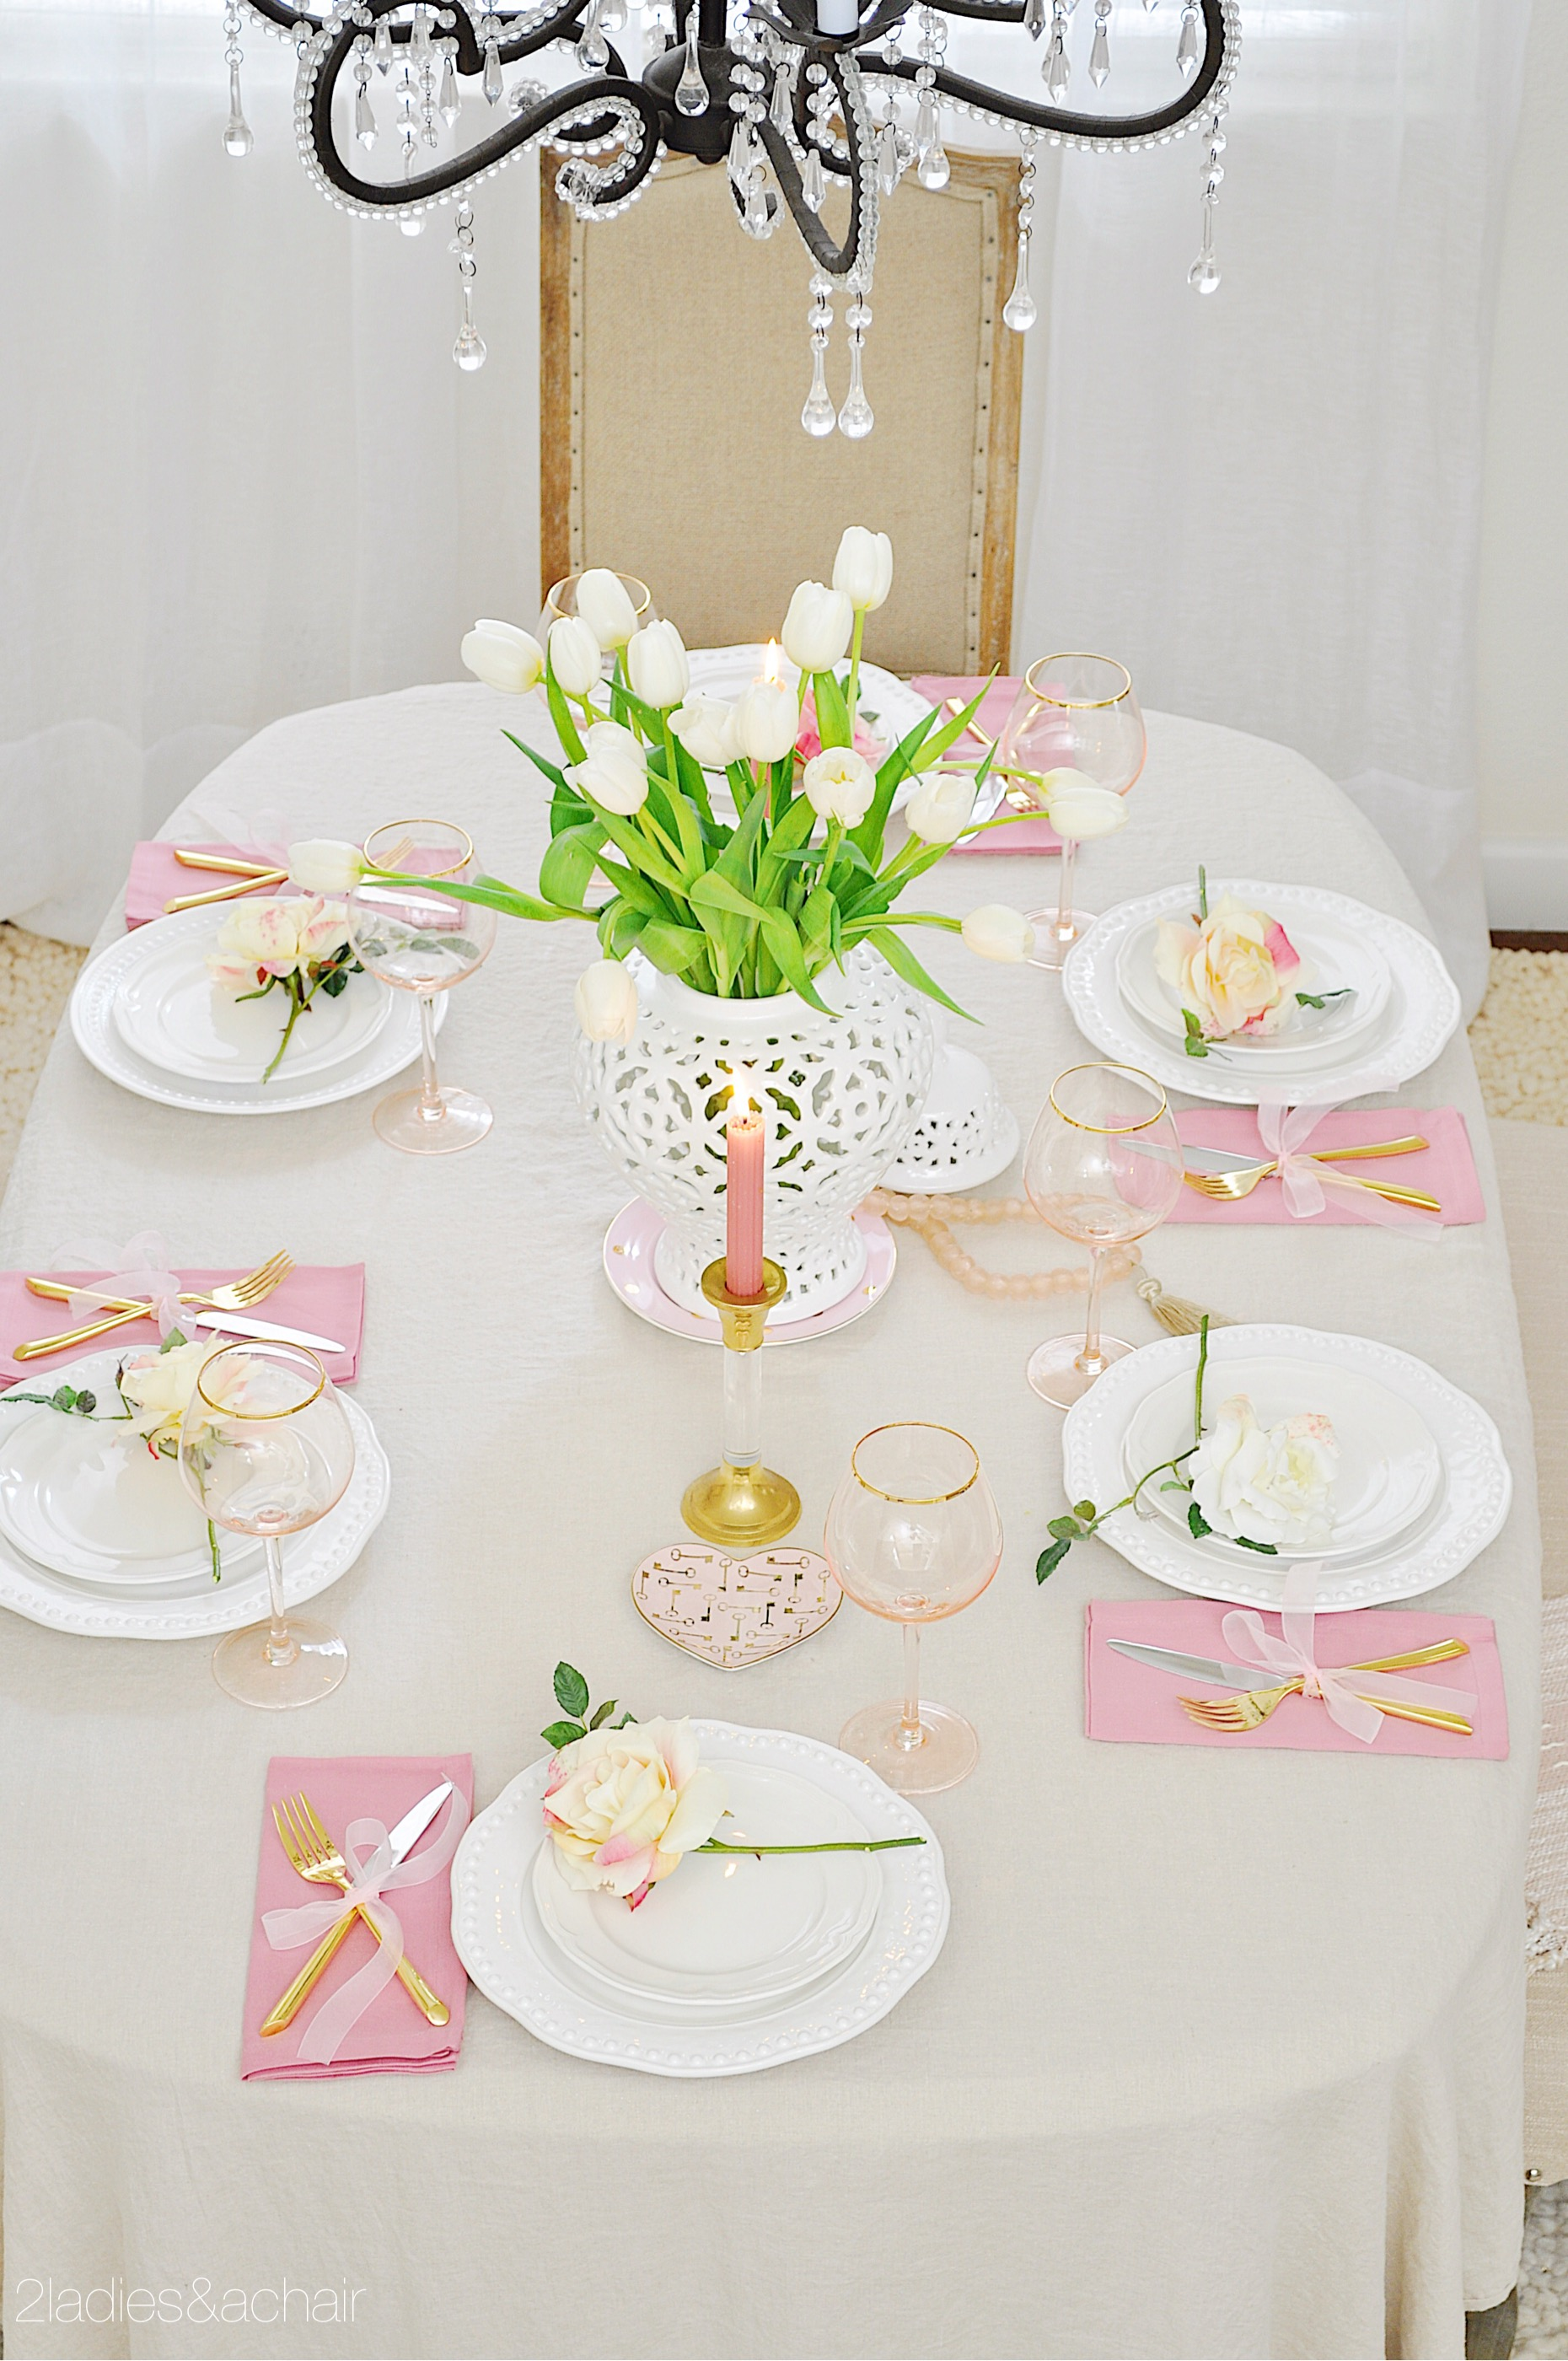 valentine's day table decor IMG_8960.JPG